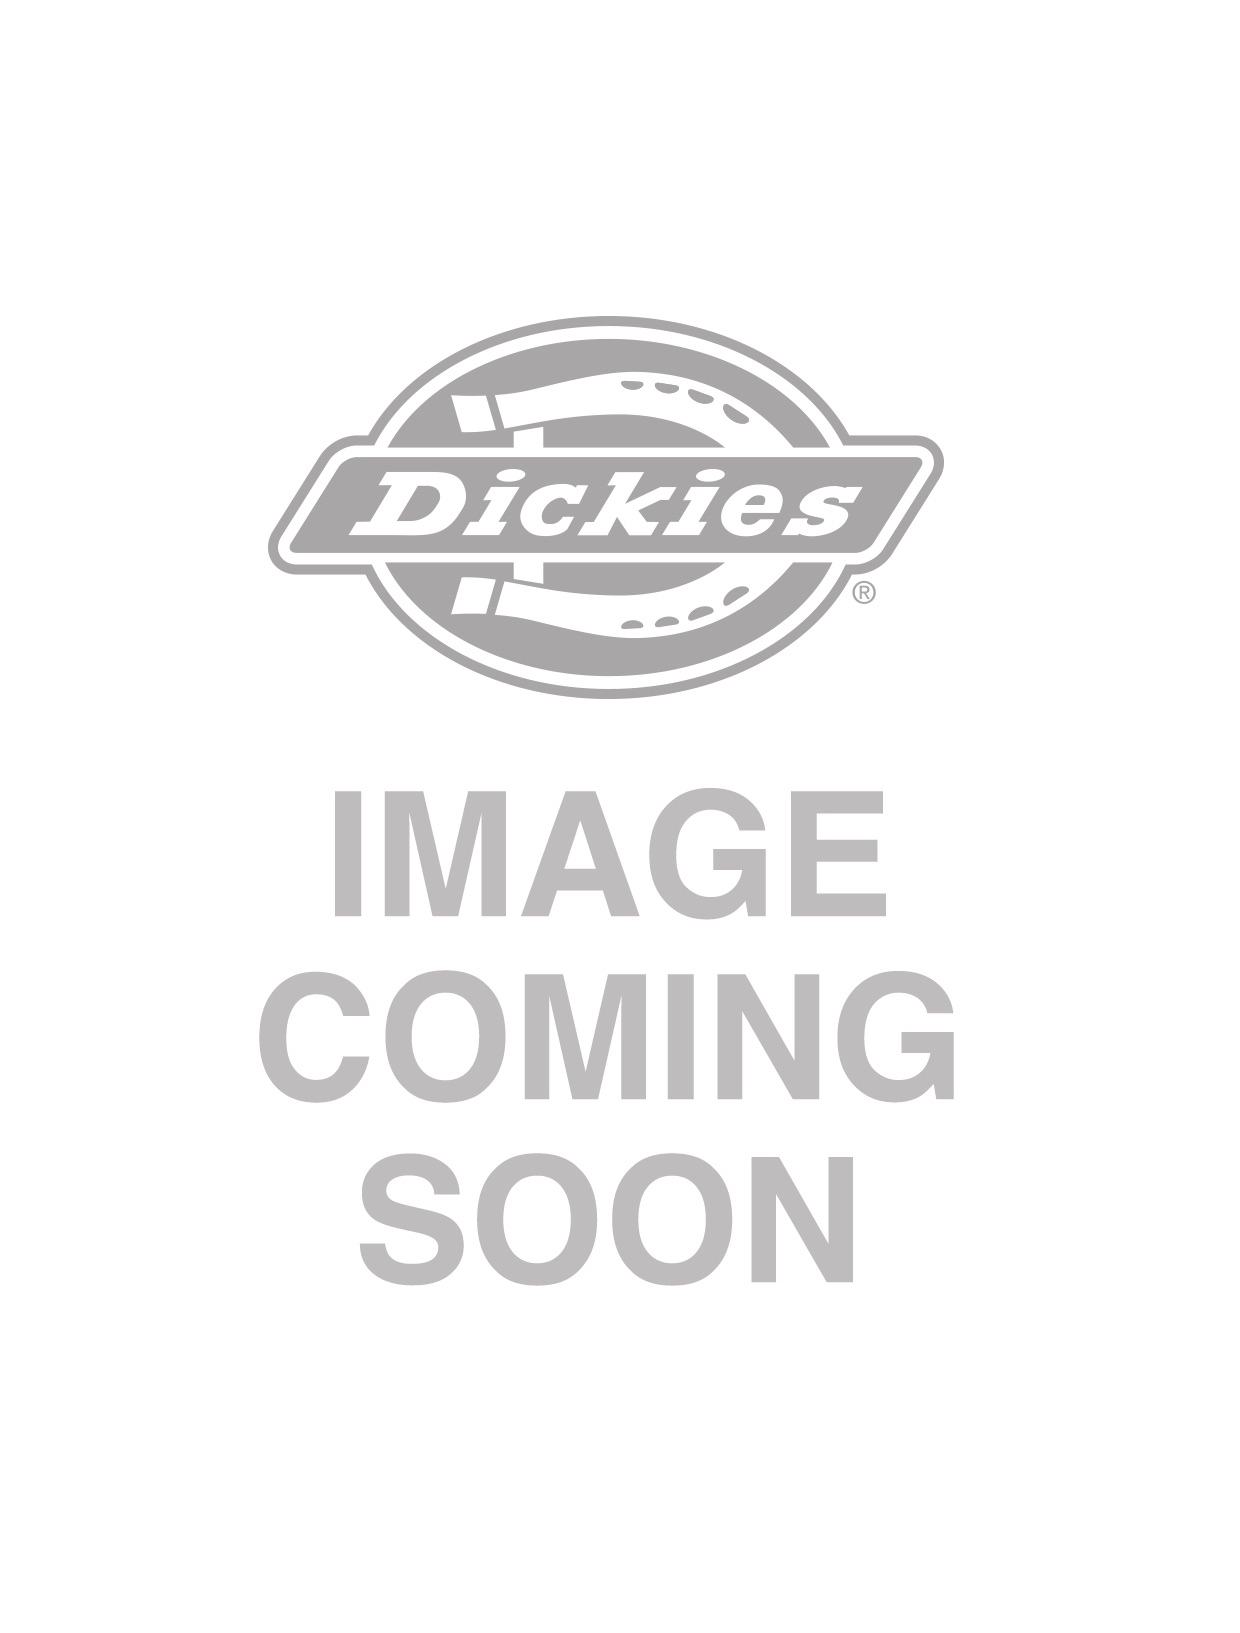 Dickies Nelliston T-Shirt